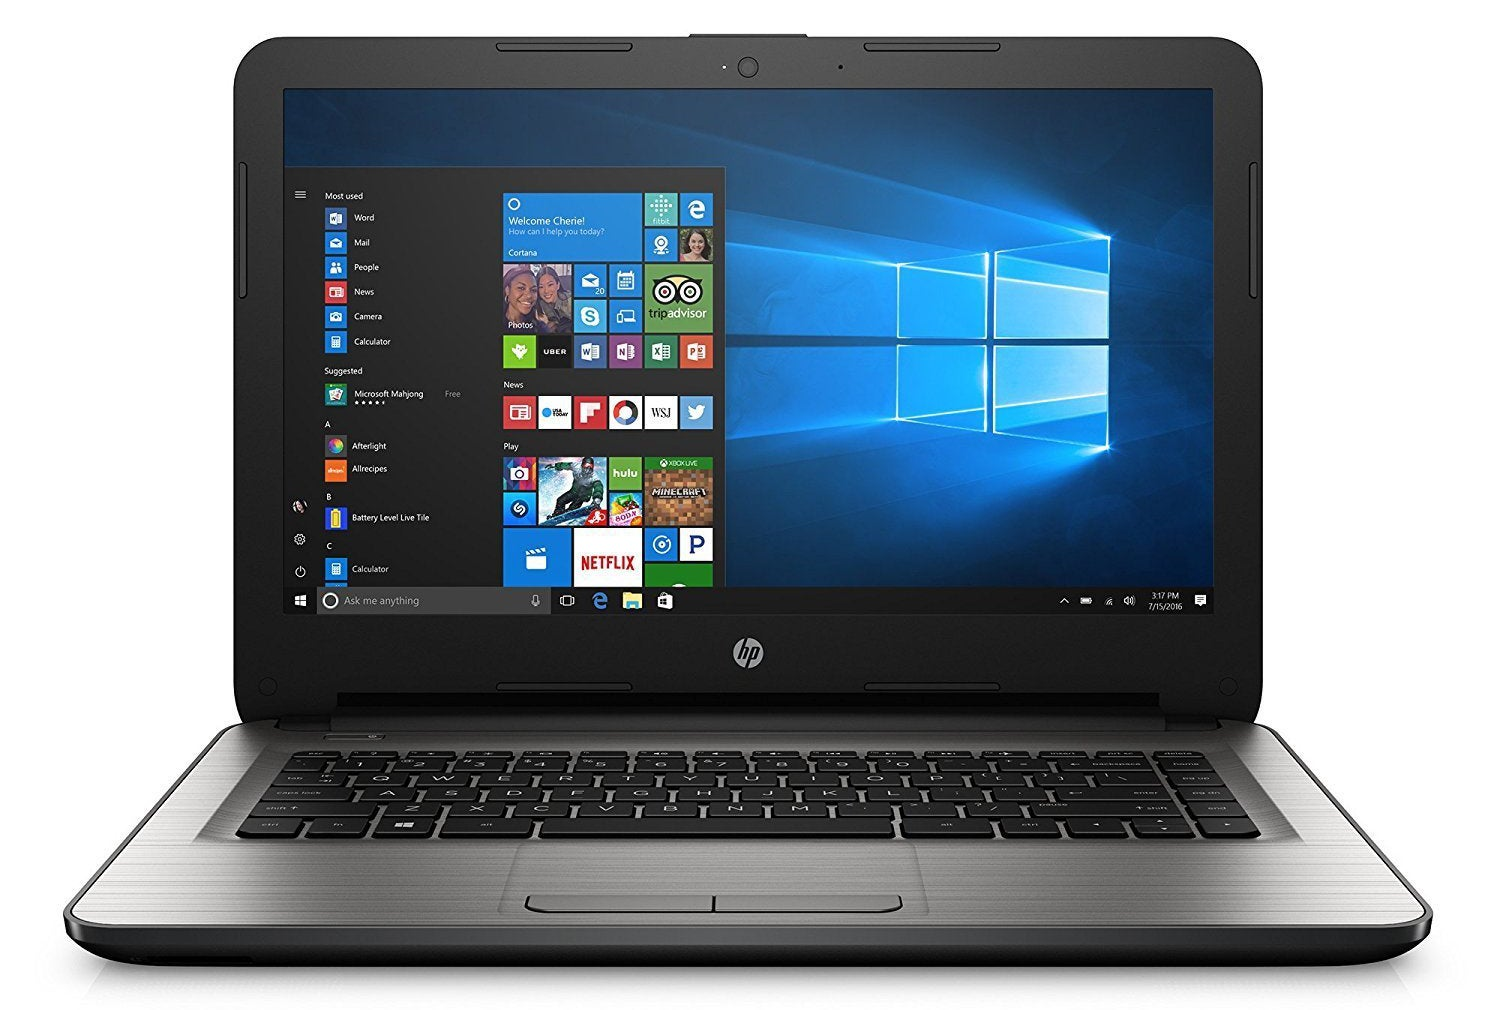 Before you proceed with the list of our most recommended best 17 inch laptops, let's discuss whether 17 inch laptop is the right fit for your requirements or not.